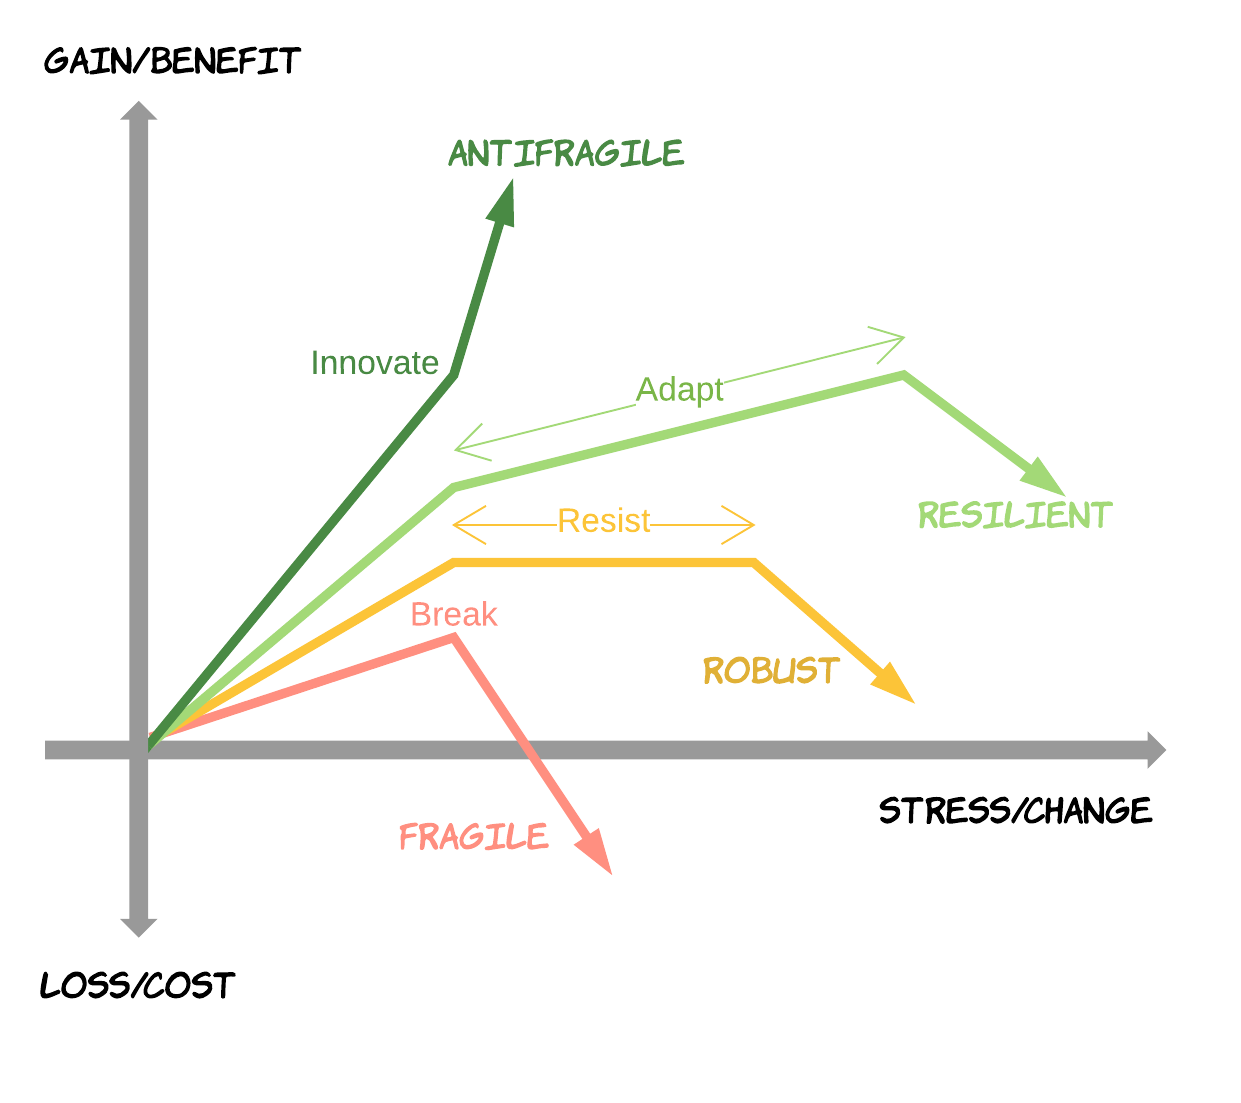 Fragile vs Antifragile